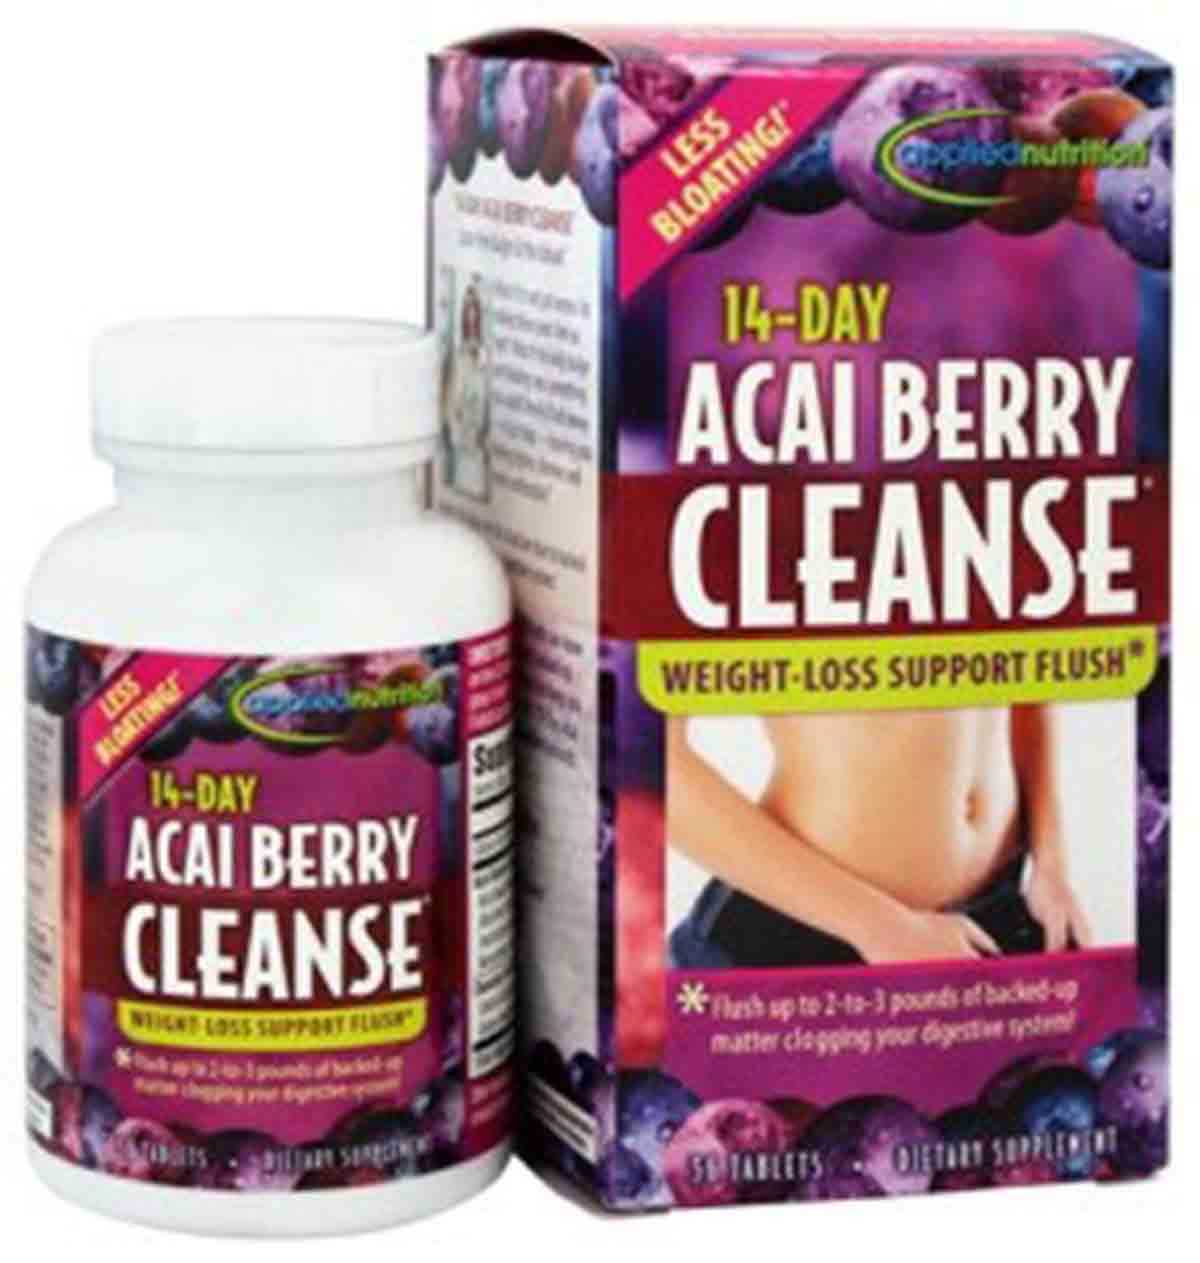 Acai-Berry-Cleanse-Supplement